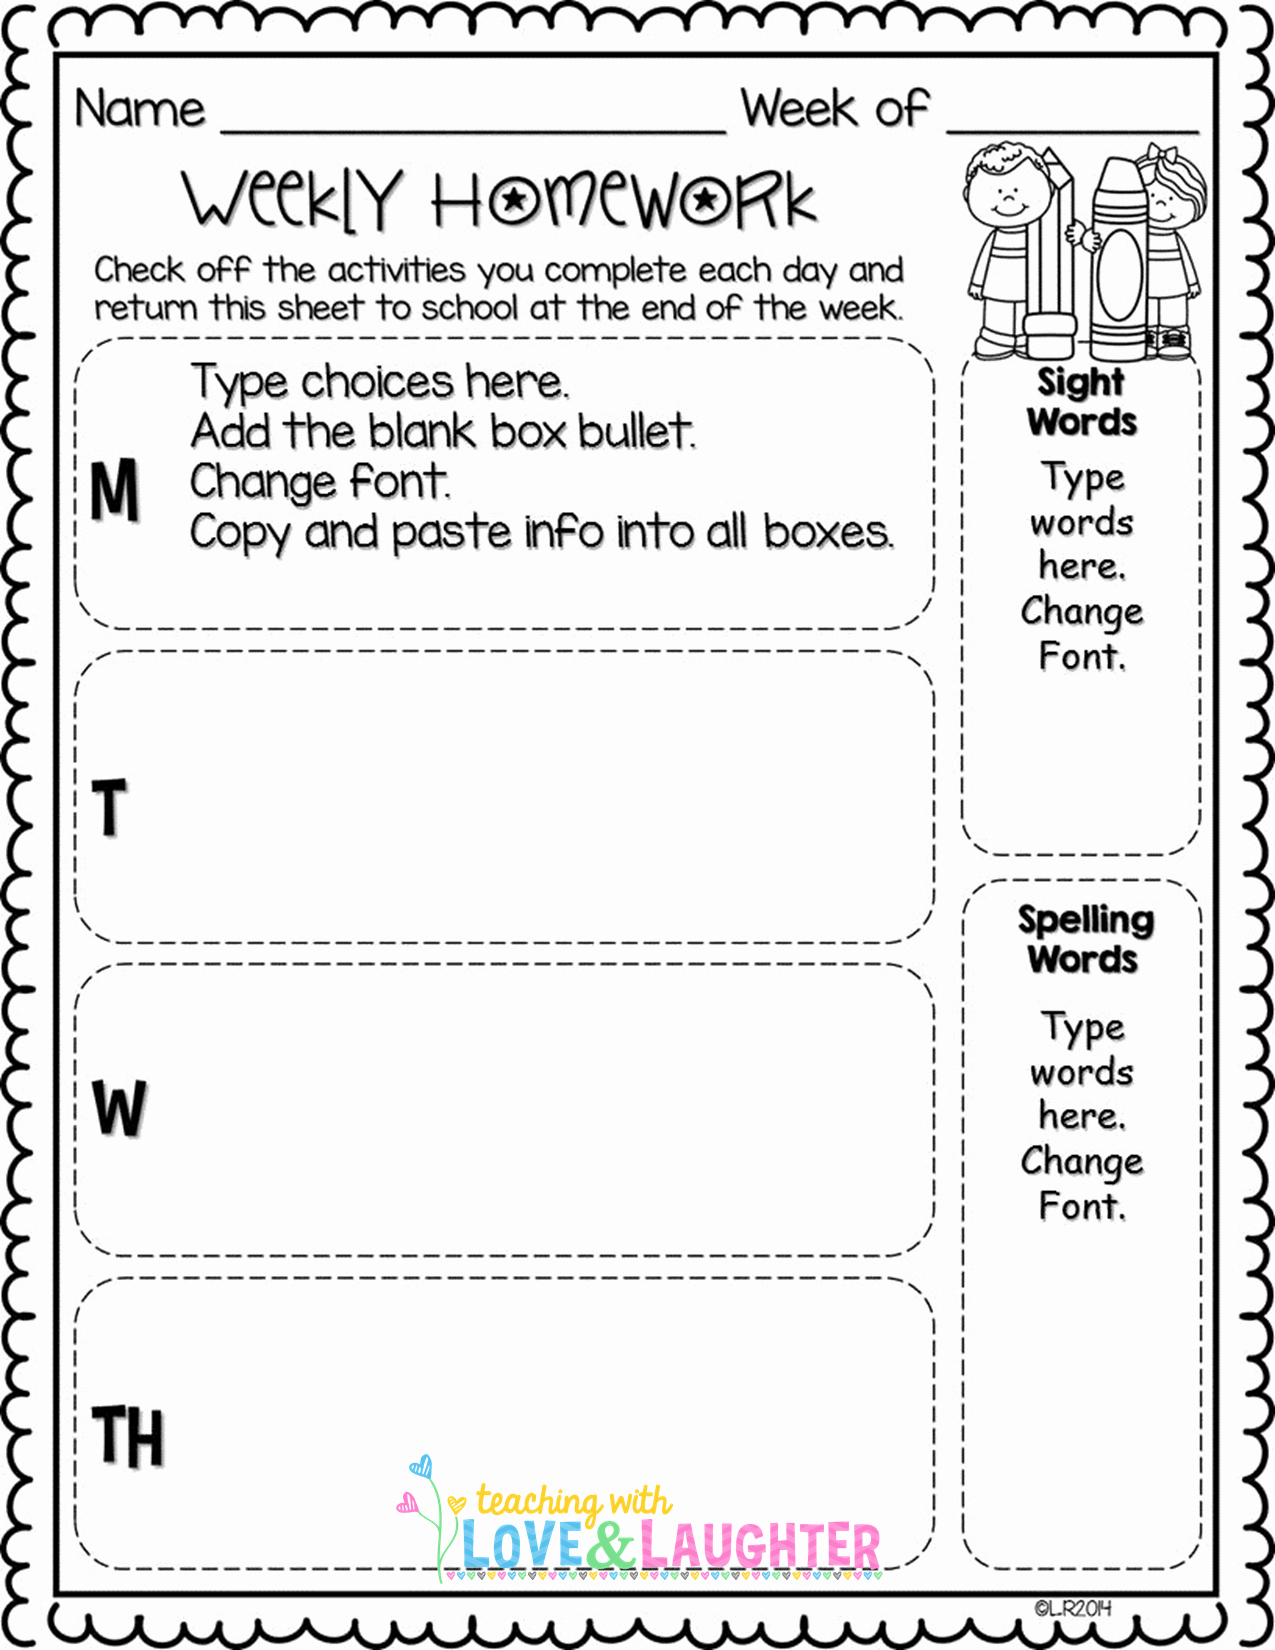 Weekly Homework assignment Sheet Template New Editable Weekly Homework Checklists Patible with First